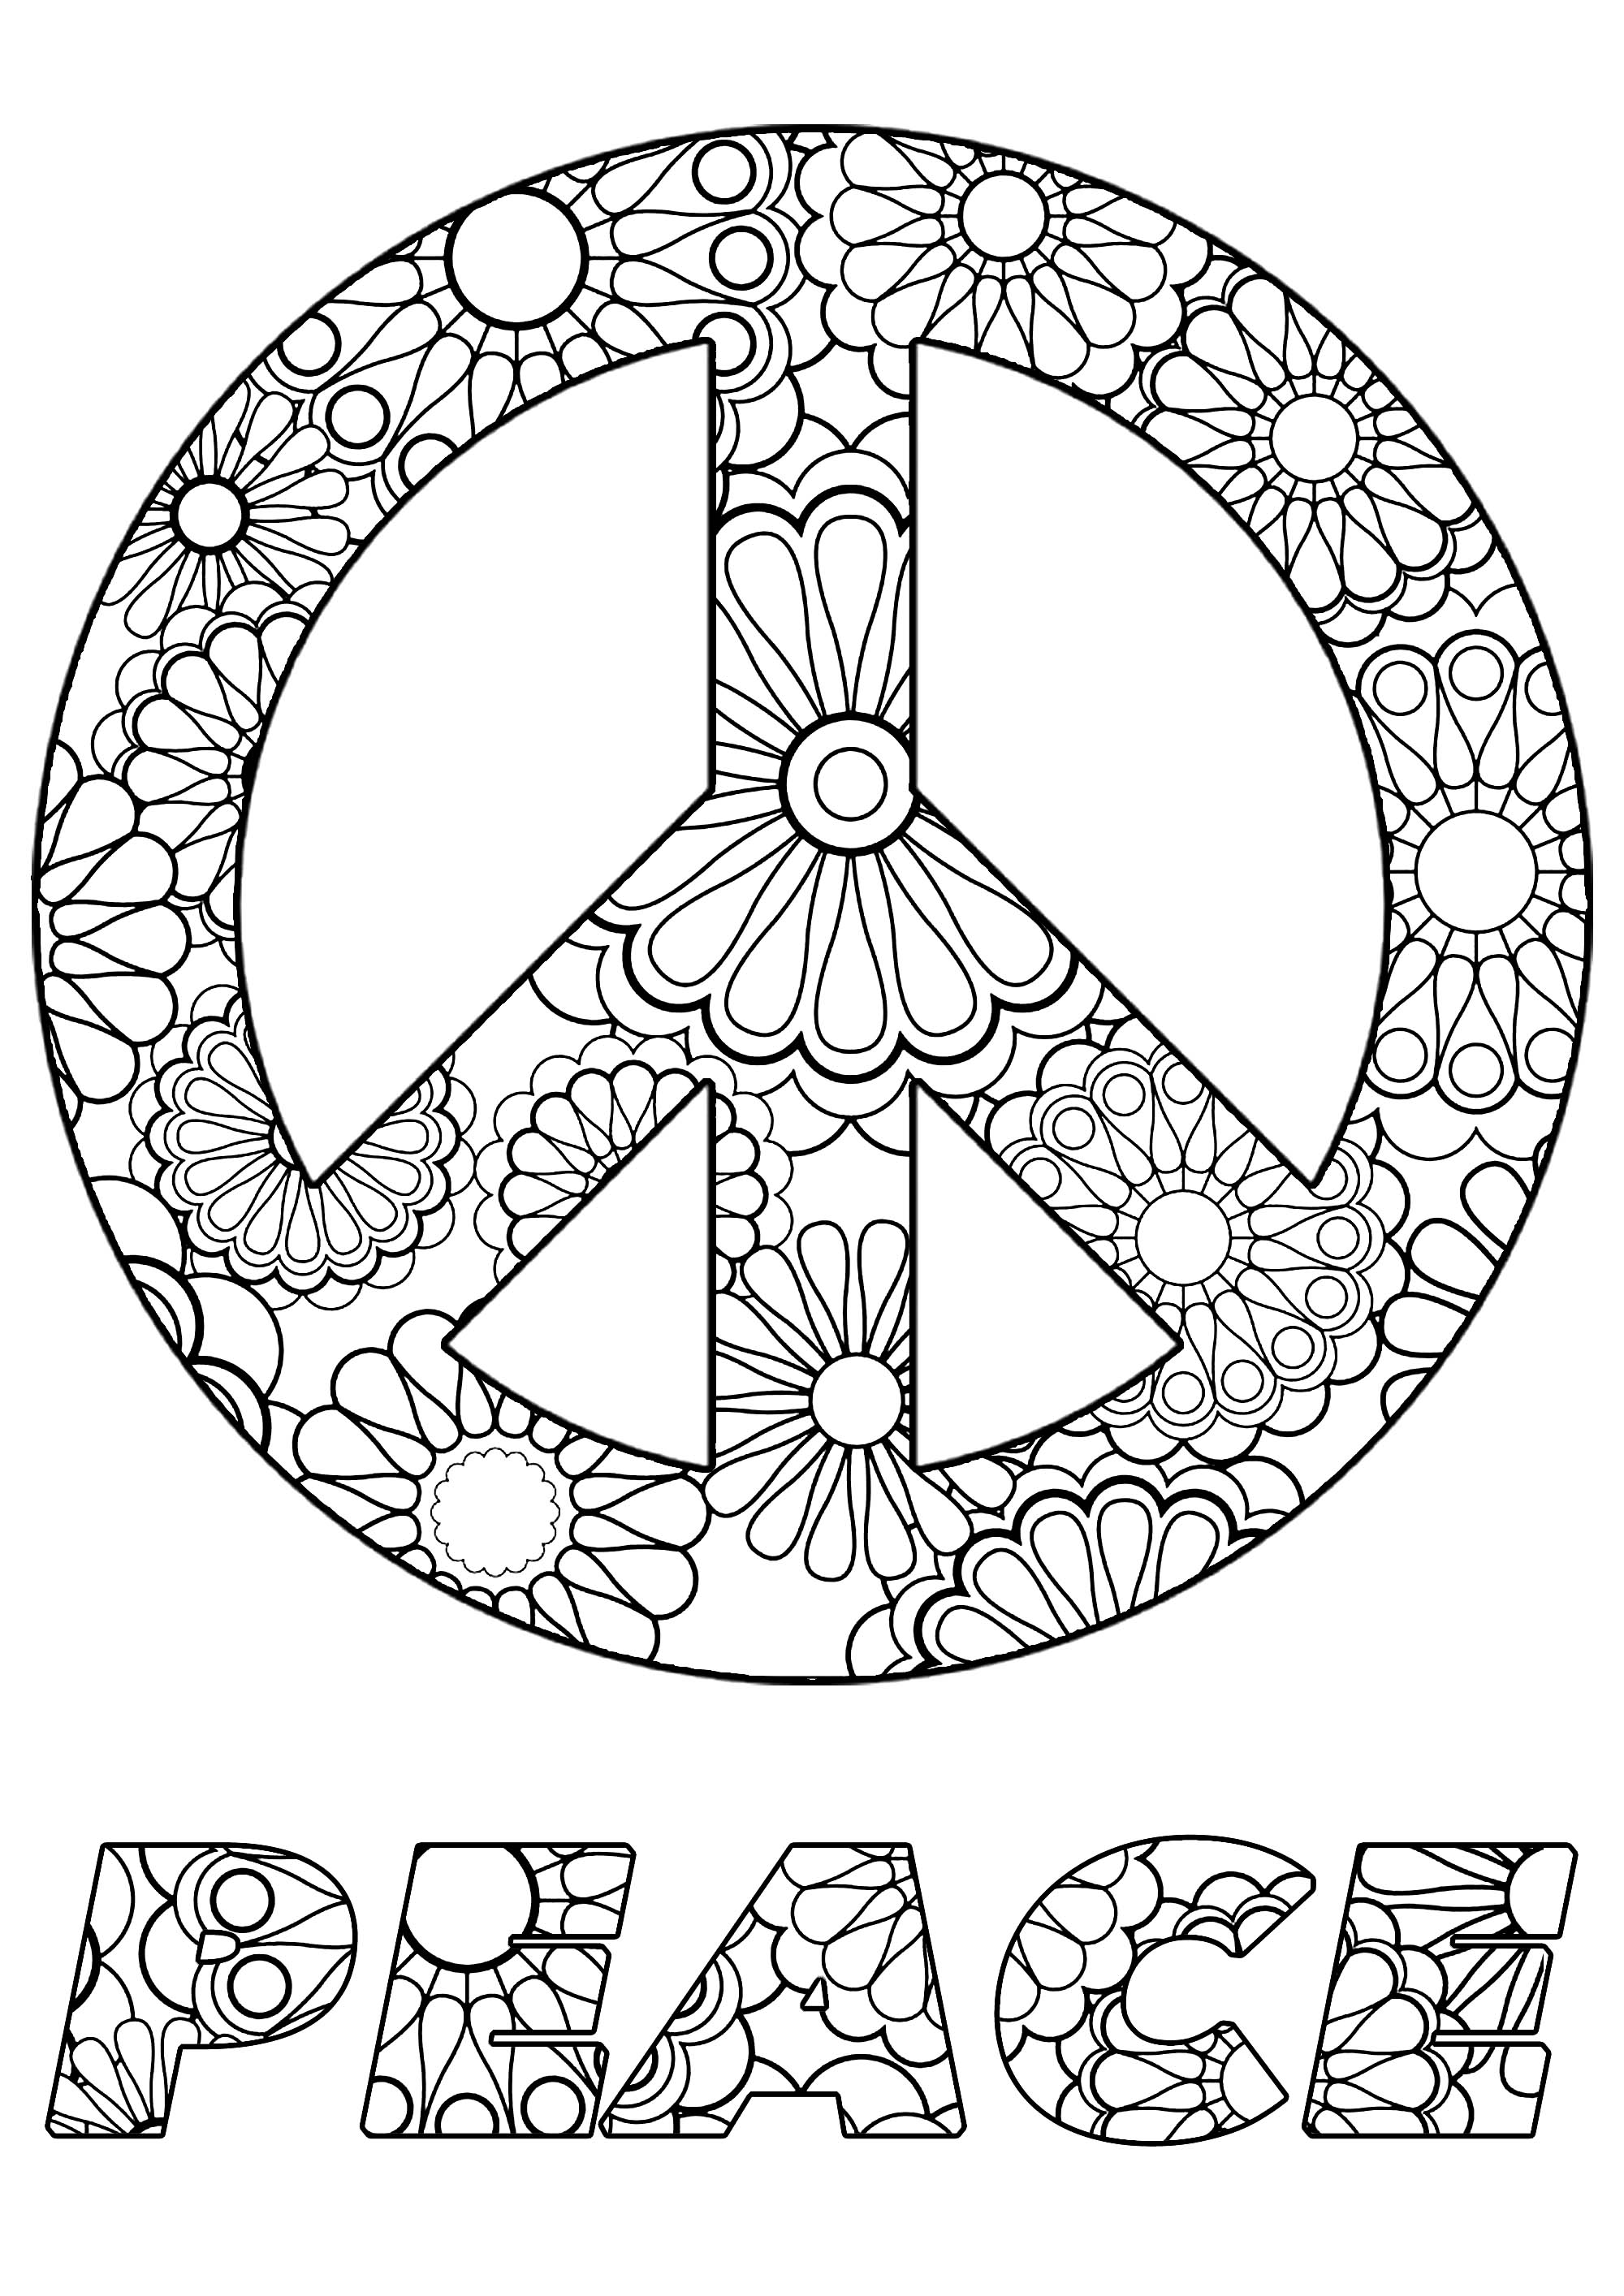 coloring sign peace symbol anti stress adult coloring pages coloring sign